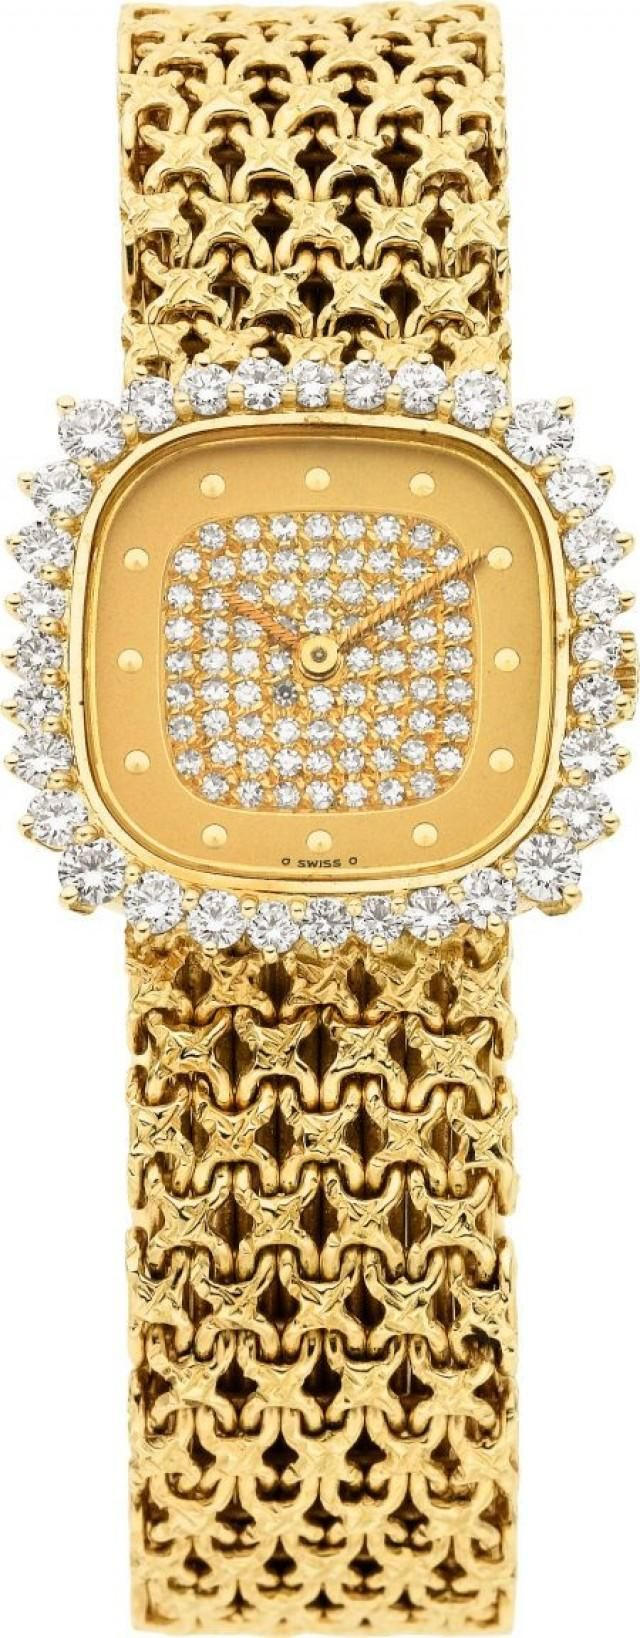 Patek Philippe Diamond, Gold Wristwatch.